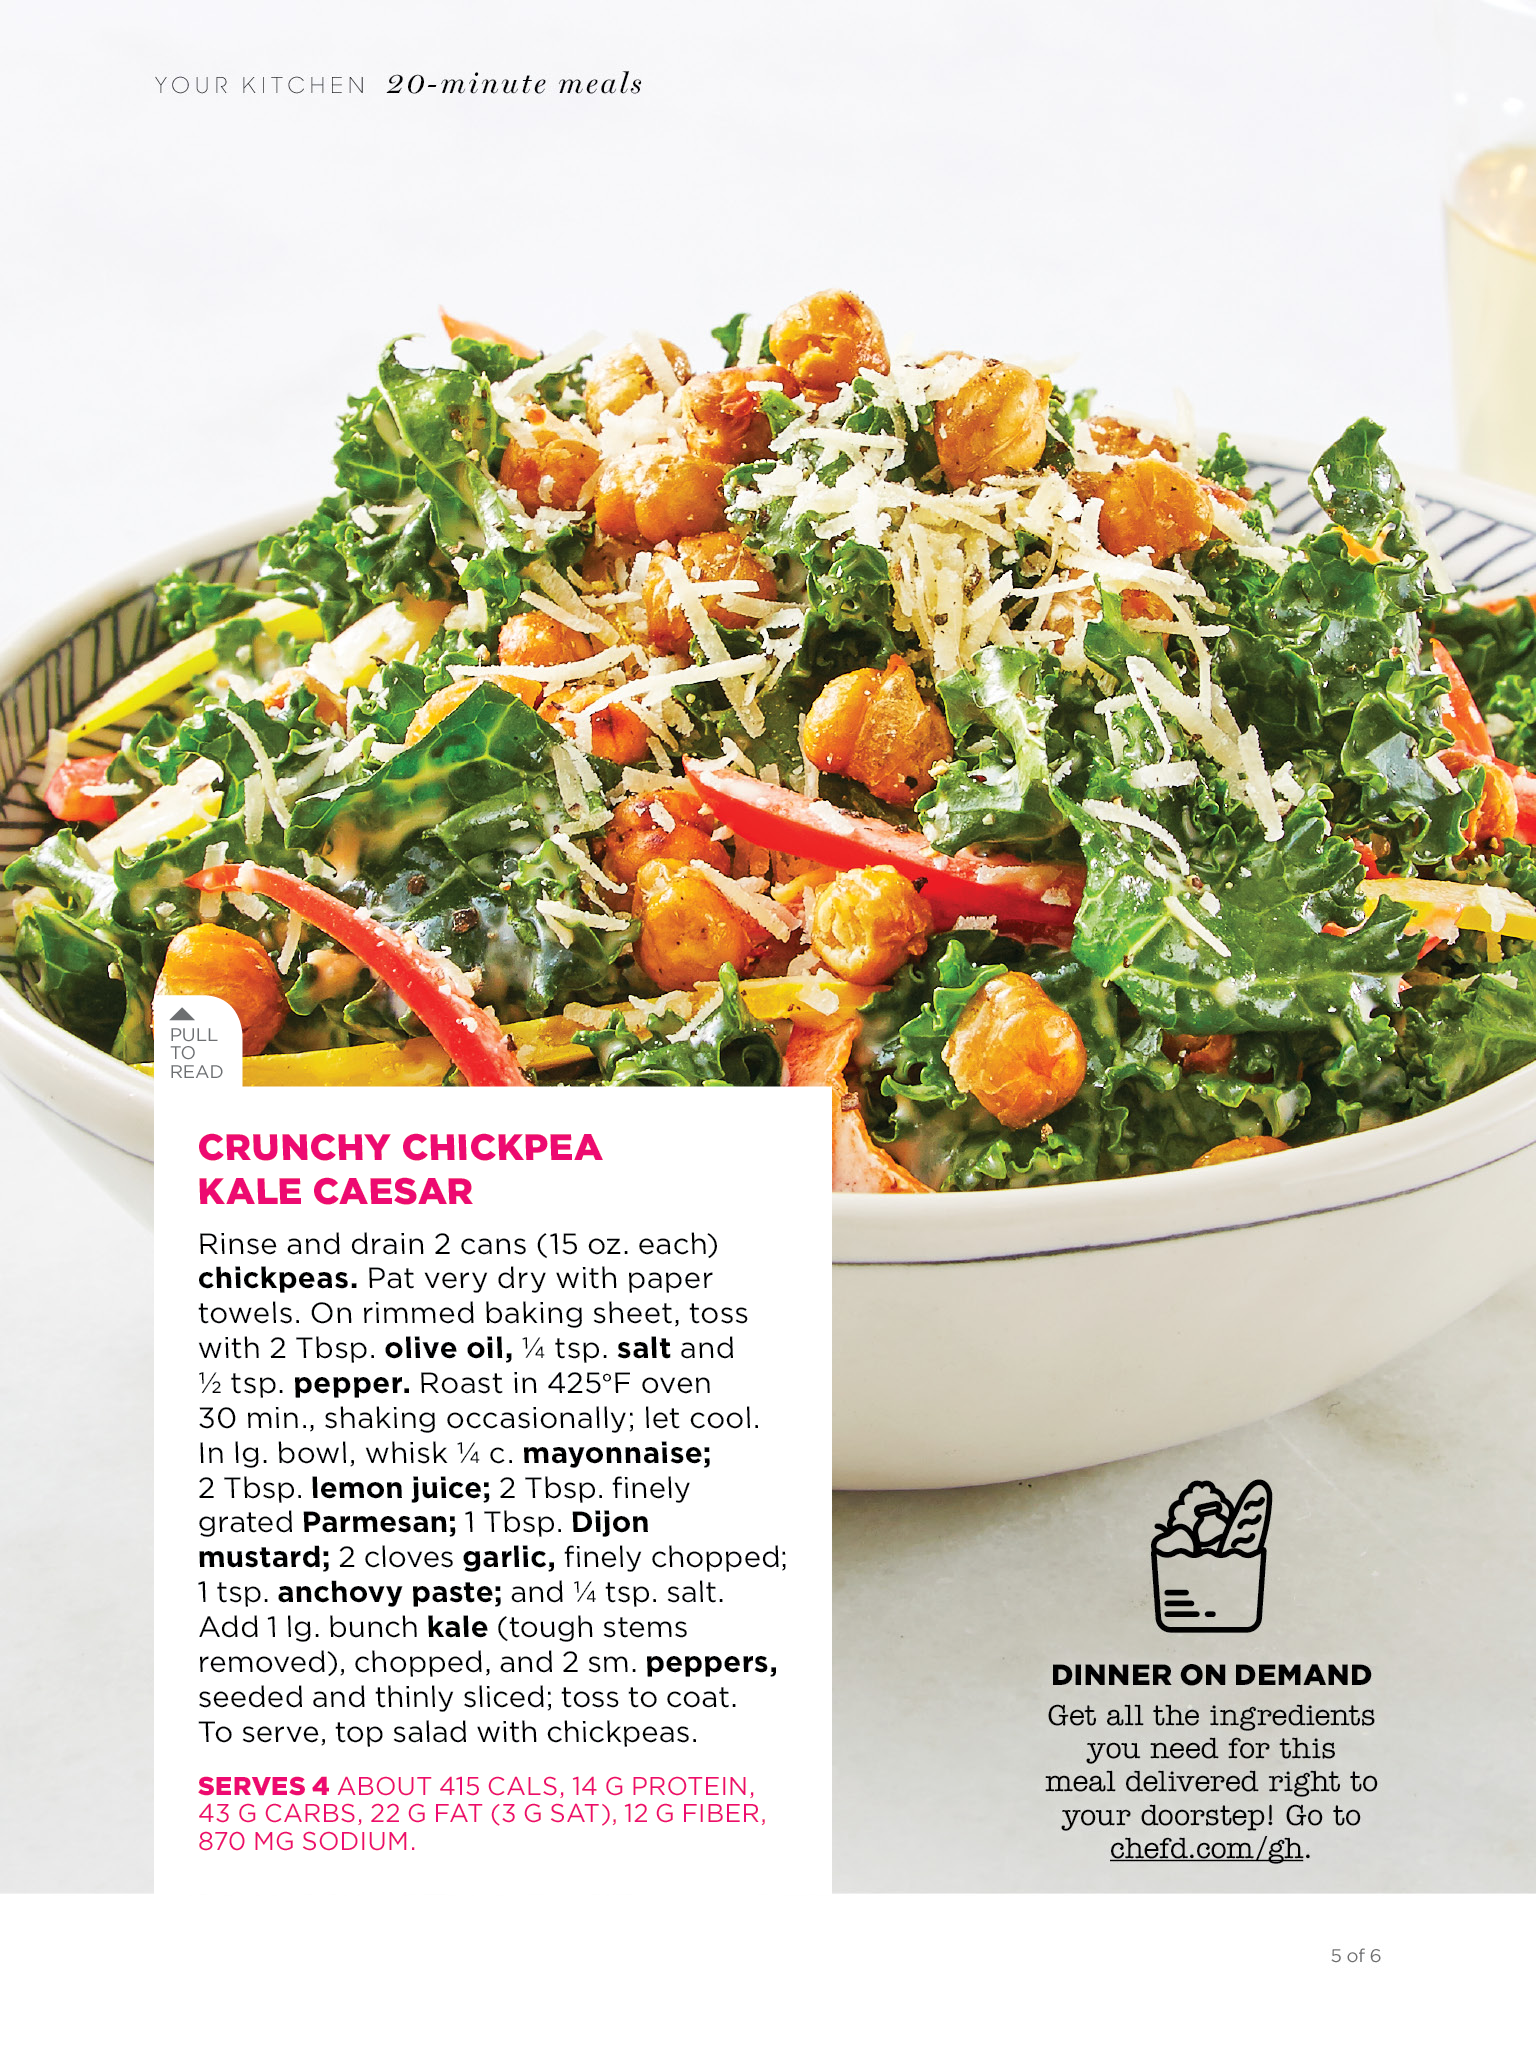 Crunchy Chickpea Kale Caesar Salad Recipe Great Healthy 20 Minute Recipe From Good Housekeeping Crunchy Chickpeas 20 Minute Recipes Stuffed Peppers